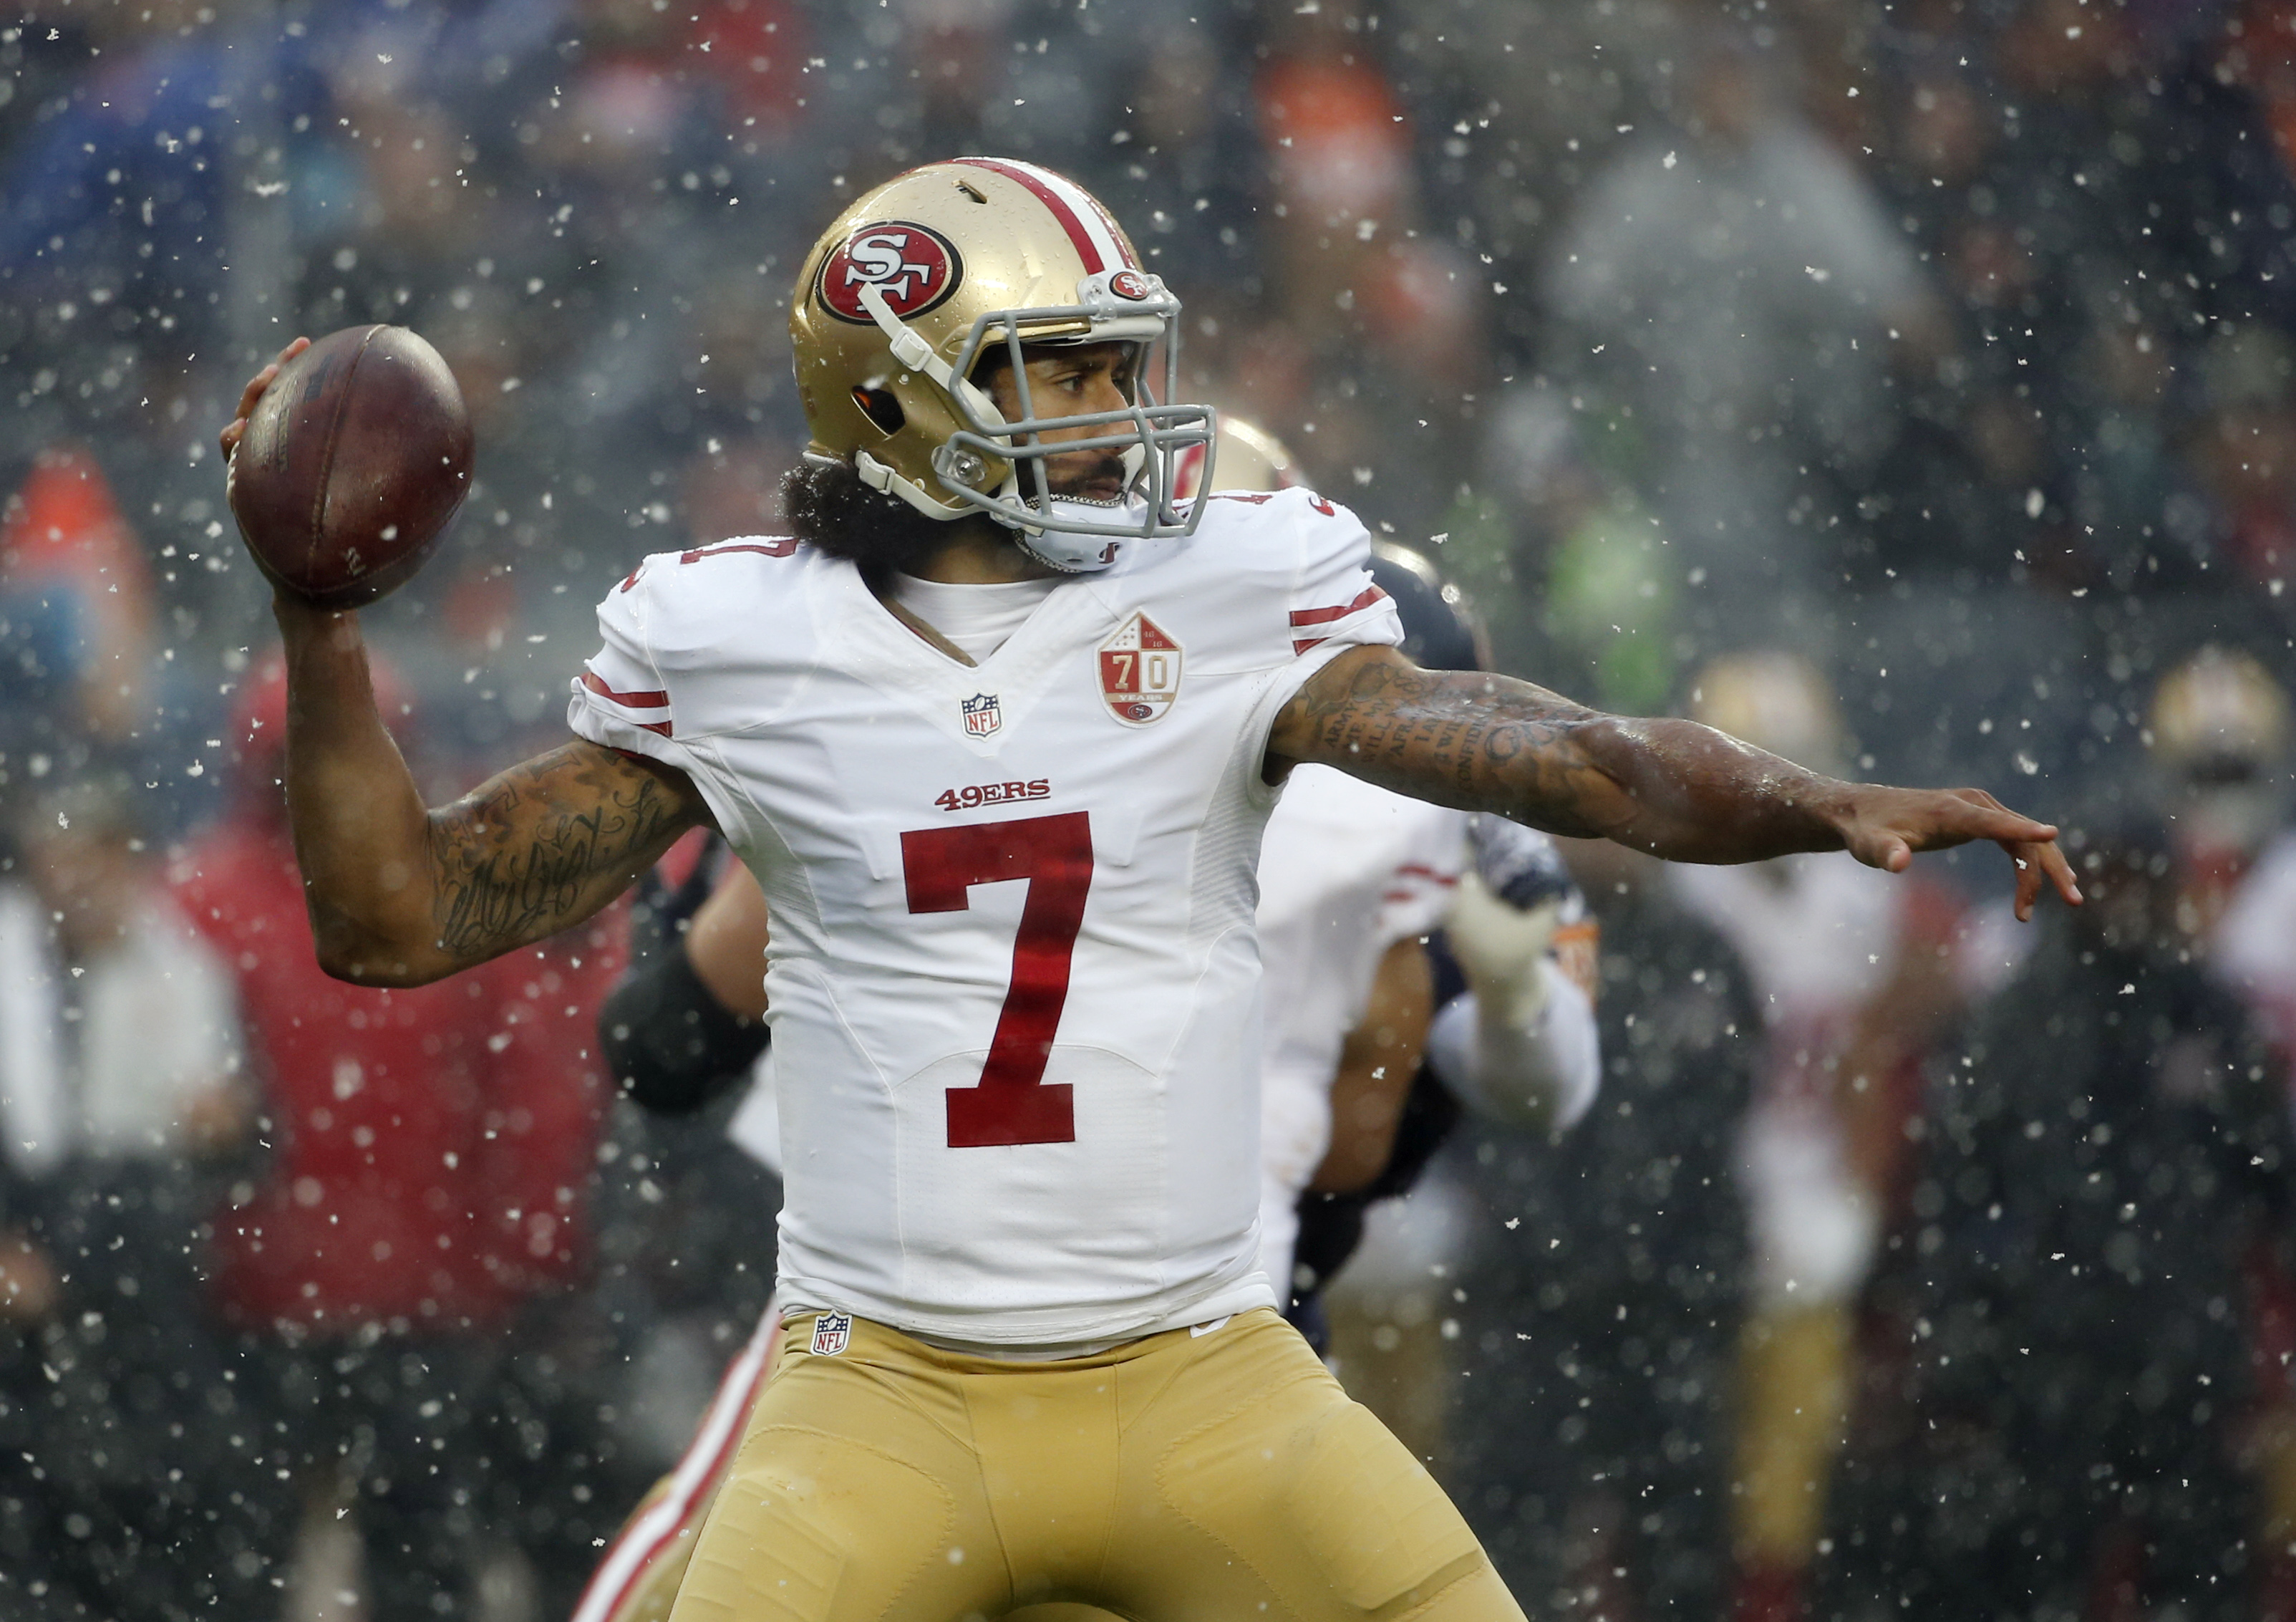 Former 49ers quarterback Colin Kaepernick throws a pass in the Soldier Field snow in 2016.